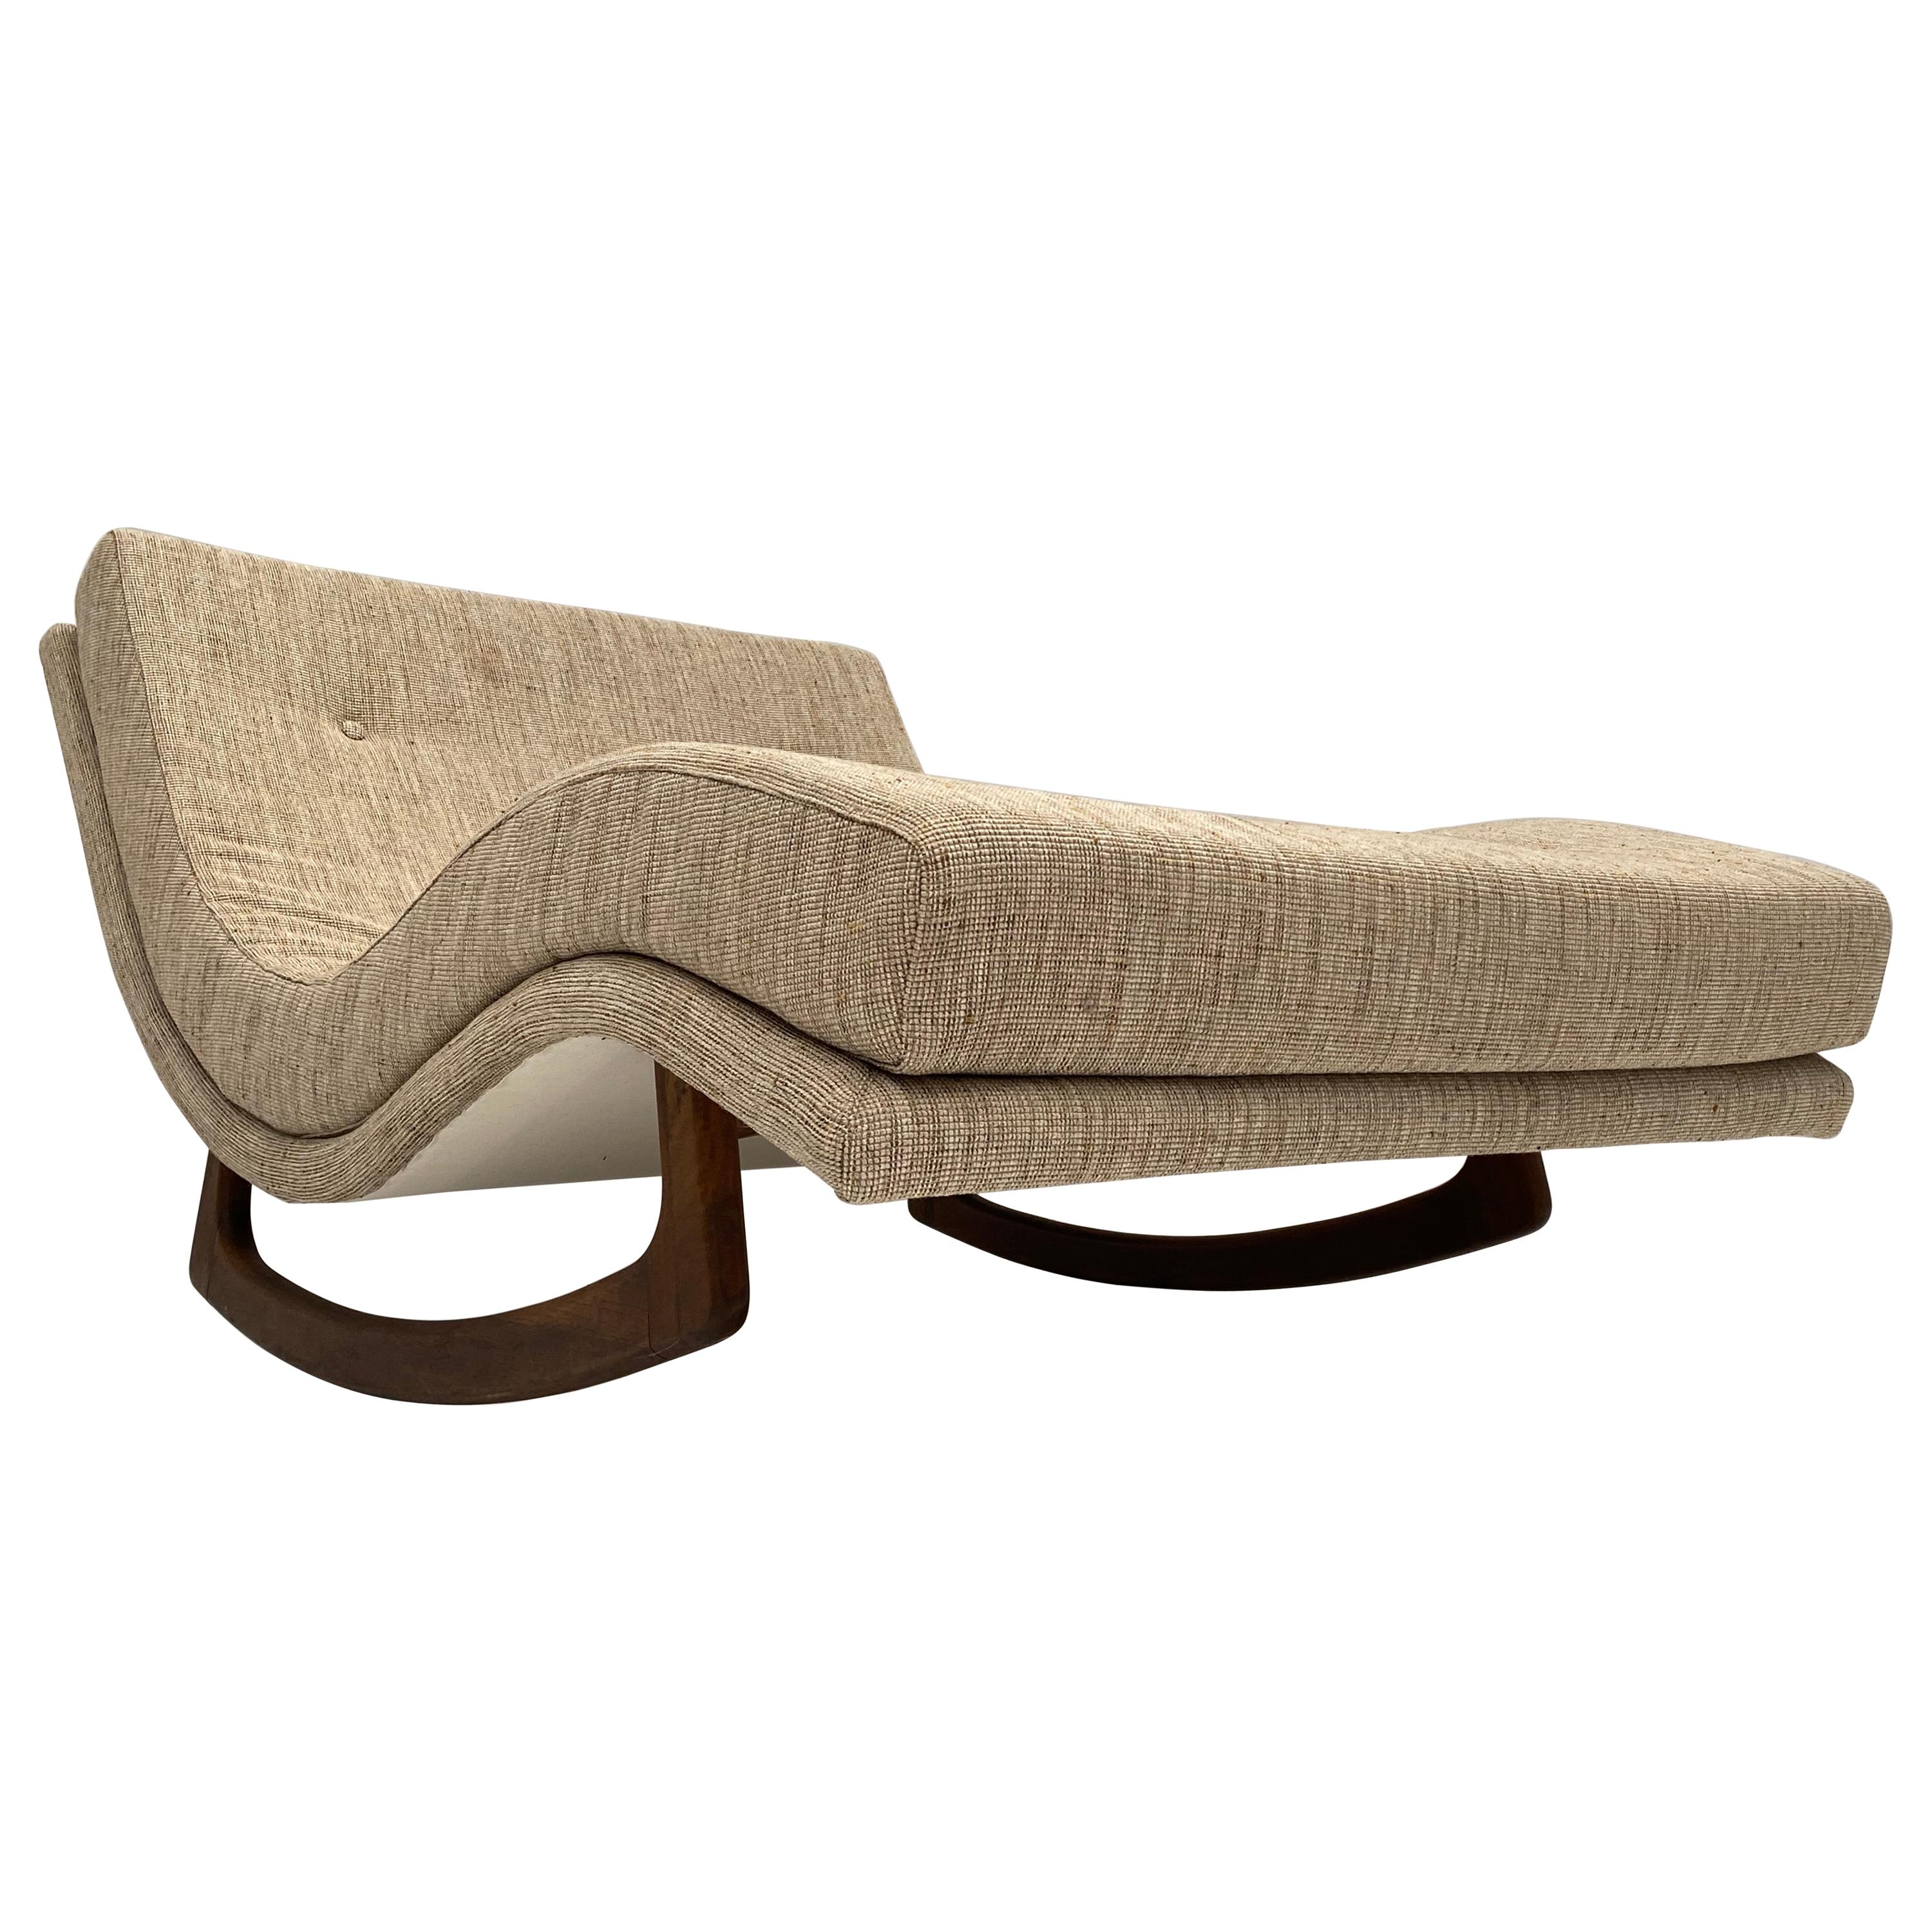 Rocking Chaise Lounge by Adrian Pearsall for Craft Associates, USA, 1960s